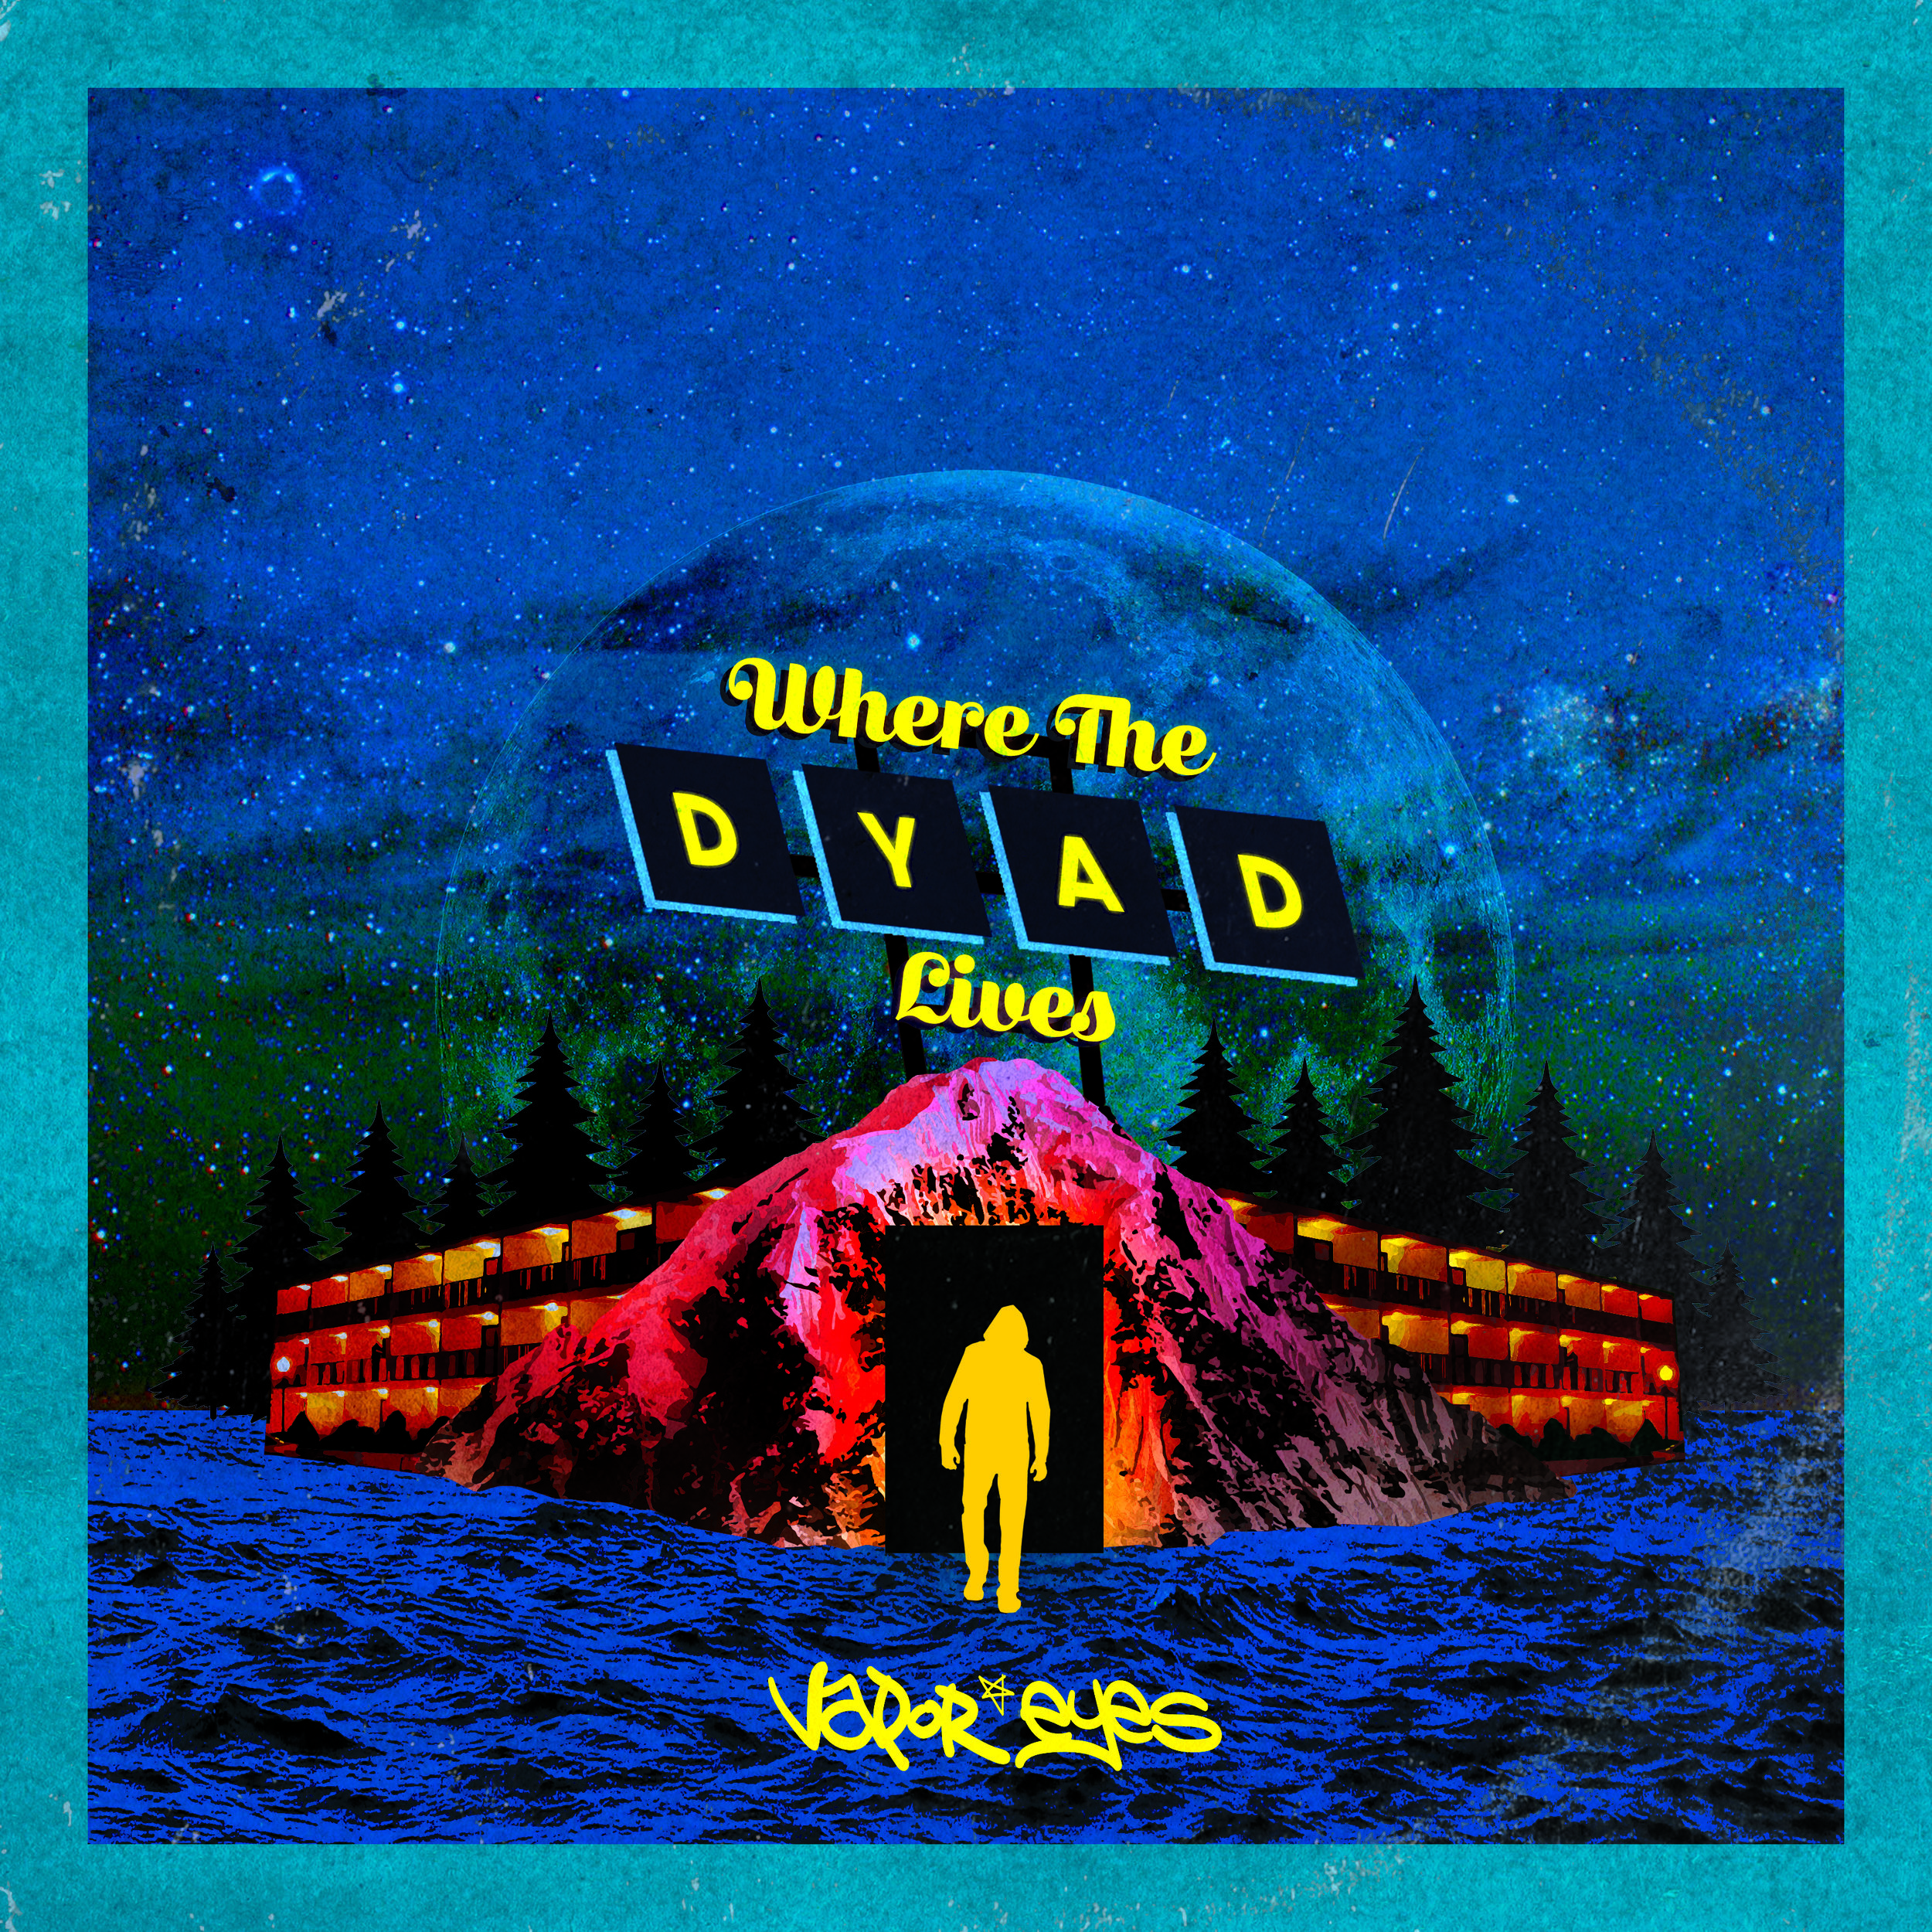 Vapor Eyes - Where the Dyad Lives - Released: April 13th, 2018Key Tracks: You Prefer Fiction, 1 Lonesome Drive, AnomalyVapor Eyes is David Cohen, a veteran Chicago producer whose unique style of sample flipping can explore a myriad of genres in a single 16-bar phrase.In a world fraught with over-stimulation, Vapor Eyes takes a few steps back to sit in the pocket of the old days. Creating a meditative vibe reminiscent of the fabled 90's chill-out rooms, Cohen takes his time narrating through his signature selection of acapella sound bites and instrumental chops.